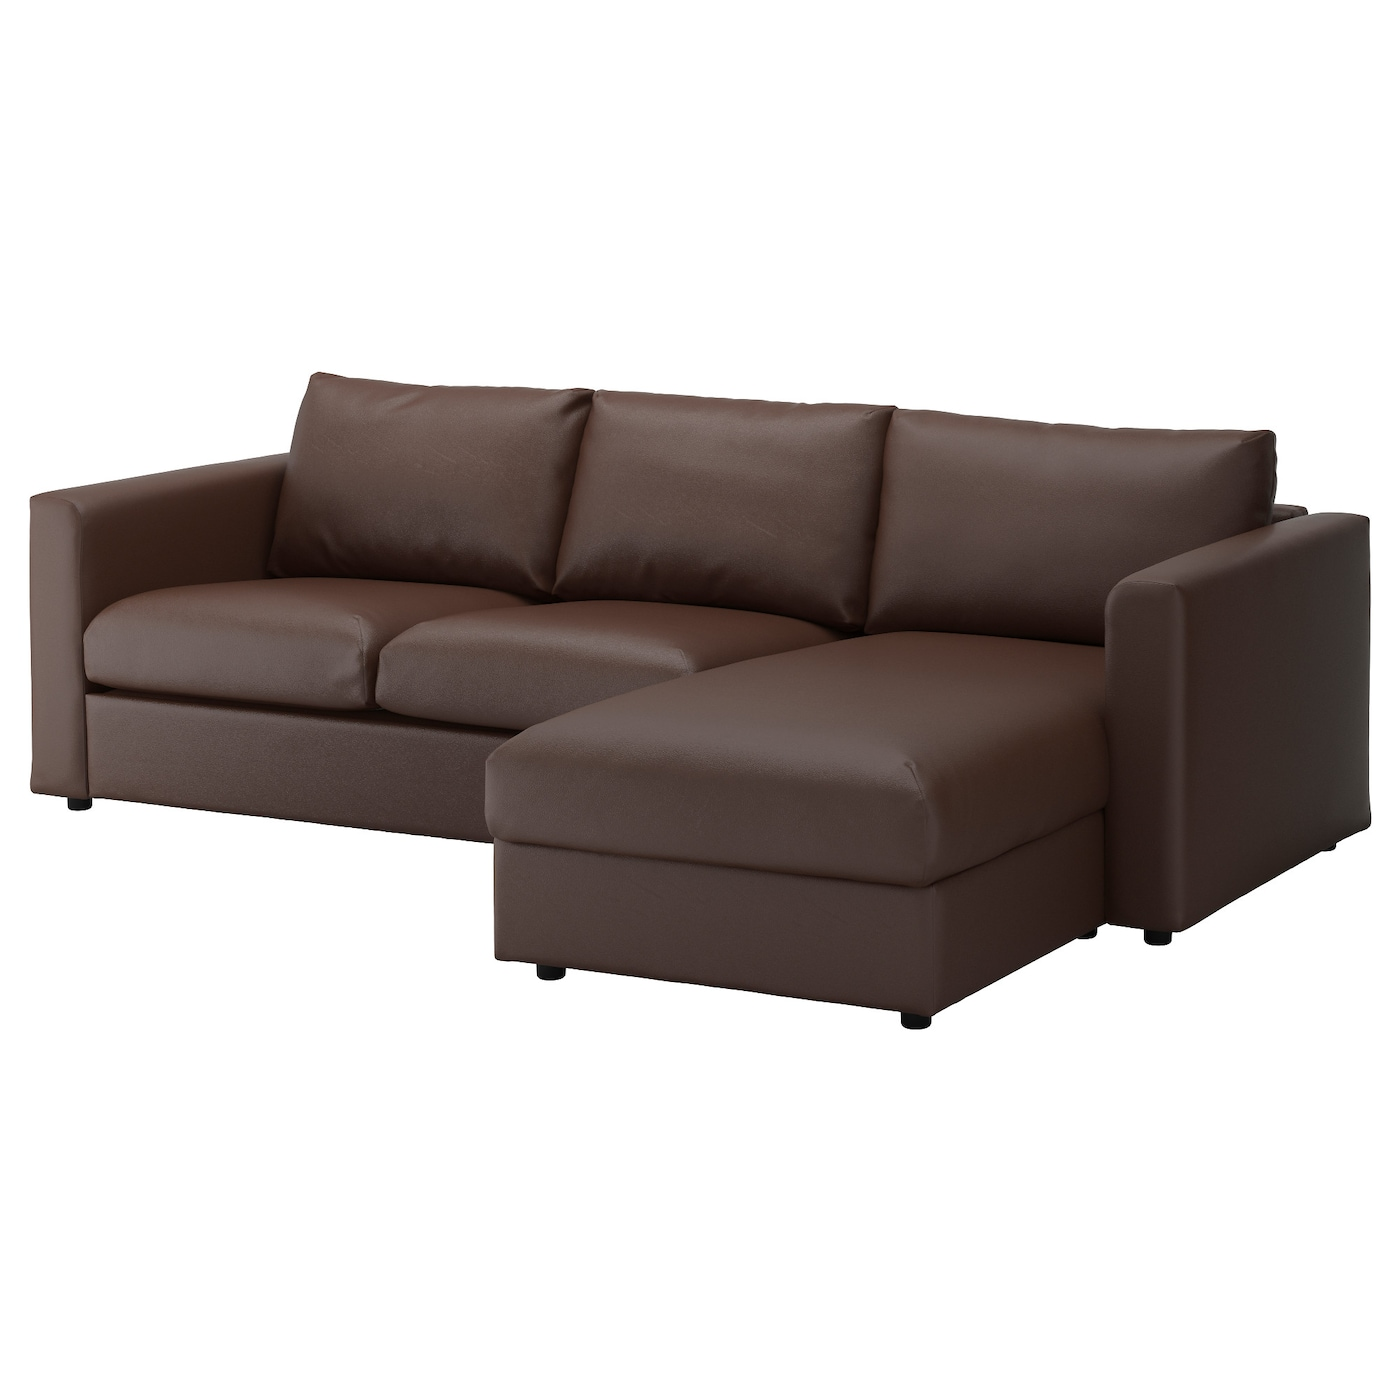 Vimle 3 seat sofa with chaise longue farsta dark brown ikea for Brown chaise sofa